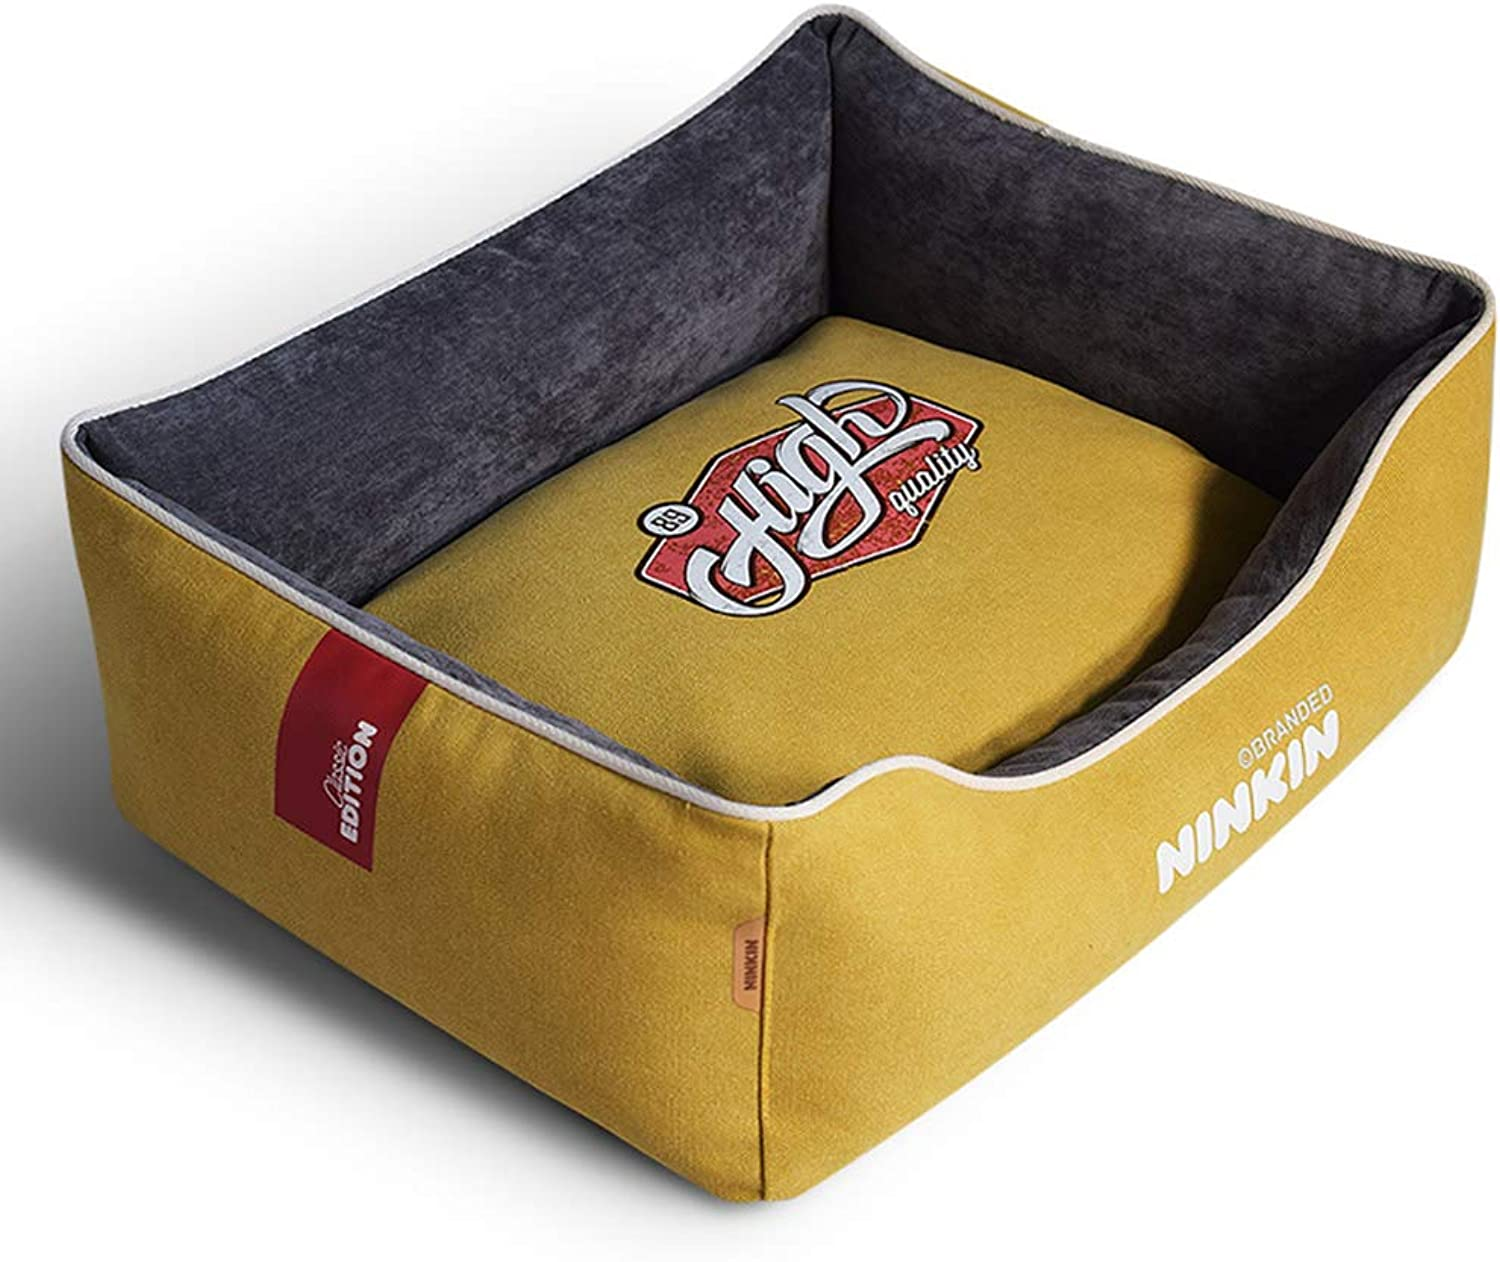 MEIHAO Soft Pet Bed, Cozy Dog Kennel Cotton Nest for Cats and Dogs, Removable Washable Cover, Thickened Washed Canvas, Small to Large, 3color Combinations,Yellow,M